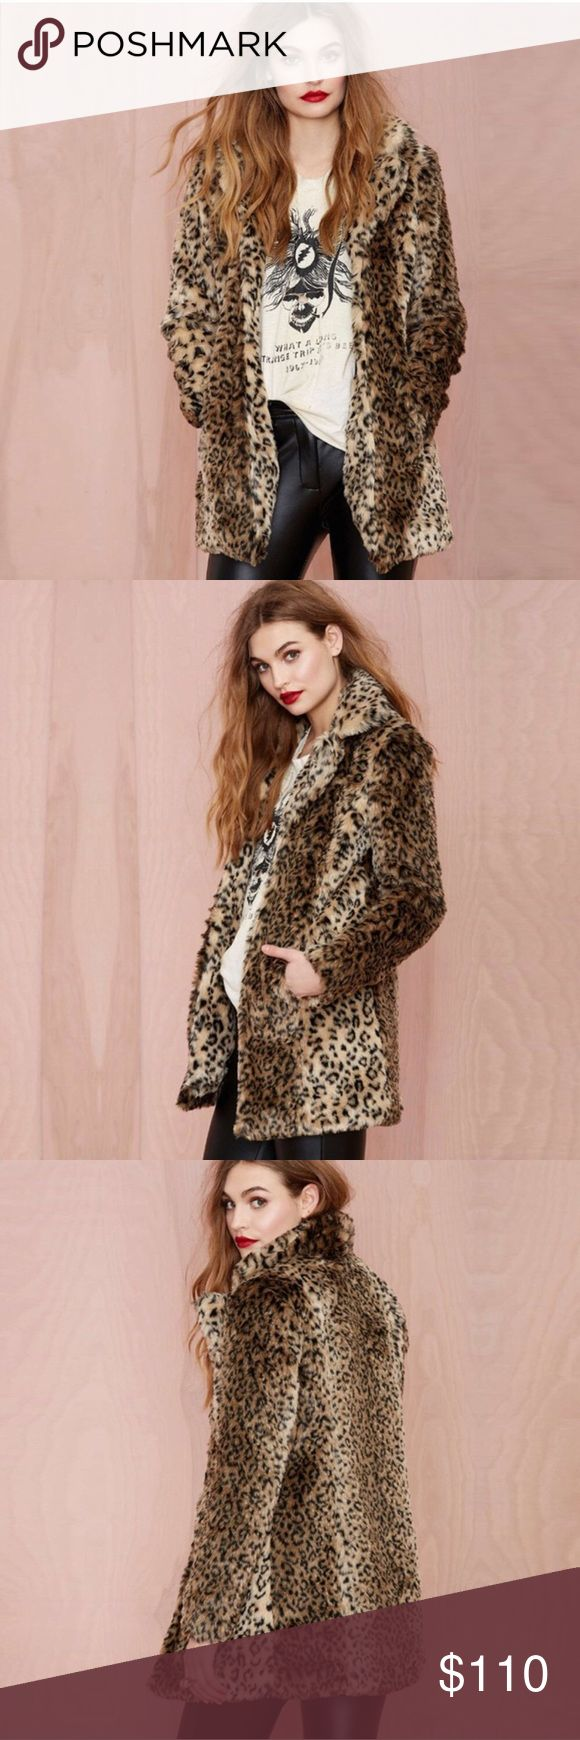 "Nasty Gal Cat Skills Coat ""This is the only time we'll ever tell you to get catty. This faux fur coat has a leopard print, open front, and pockets at waist. Fully lined. Throw it on over a black bodycon dress and moto boots or wear it with boyfriend jeans and a structured top. By Nasty Gal."" As seen on Emma Roberts**   Measurements:  Length from shoulder to end 30"" pit to pit 18.5"" Arm Length from shoulder 25 (Size Medium)  Length from shoulder to end 31"" pit to pit 19.5"" Arm Length from…"